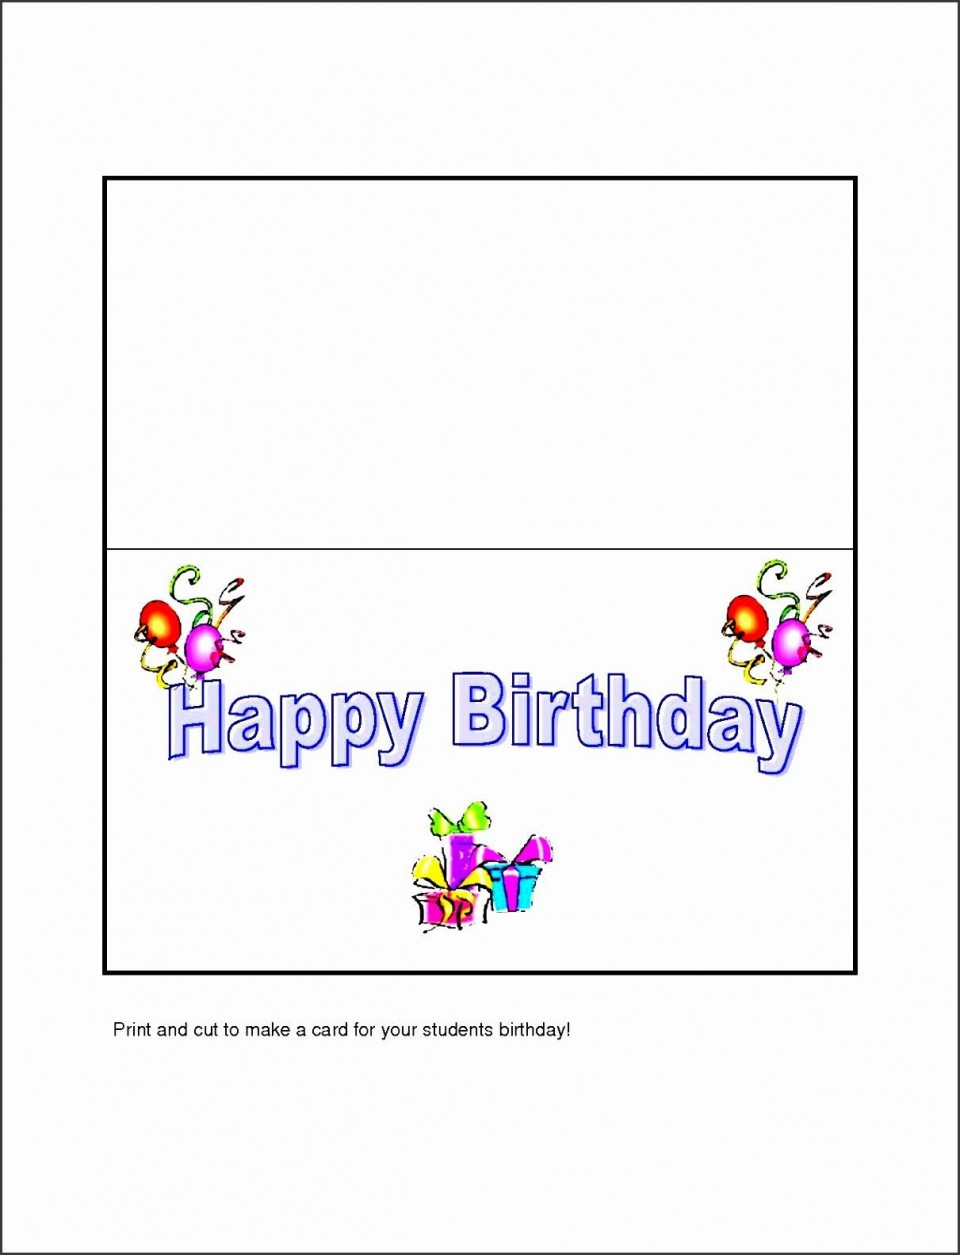 004 Singular Free Printable Card Template Word Idea  Busines Thank You Blank For960